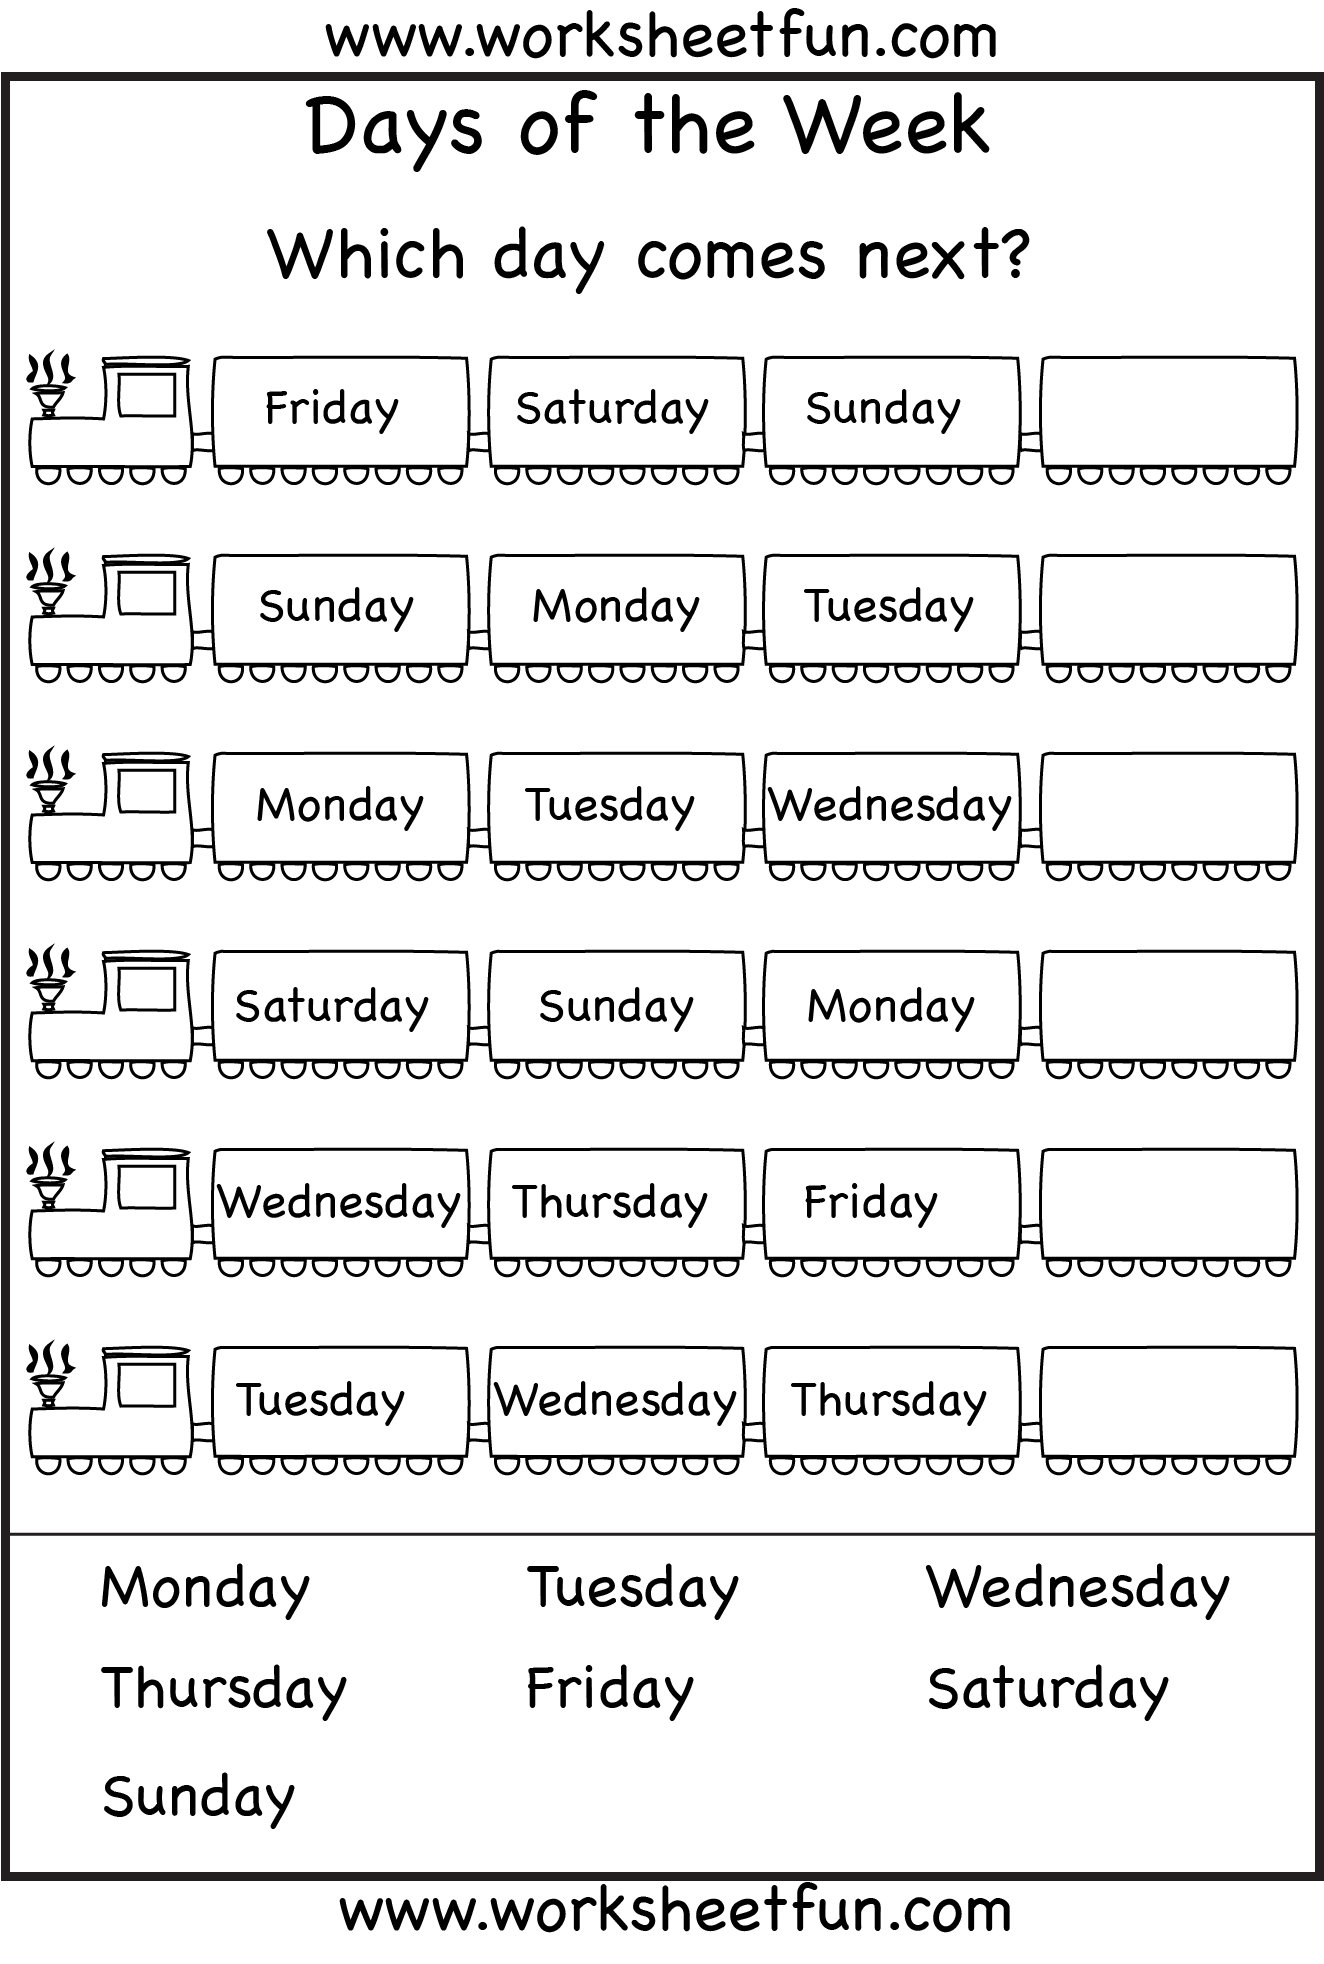 days of the week worksheet printable worksheets pinterest worksheets homeschool and. Black Bedroom Furniture Sets. Home Design Ideas